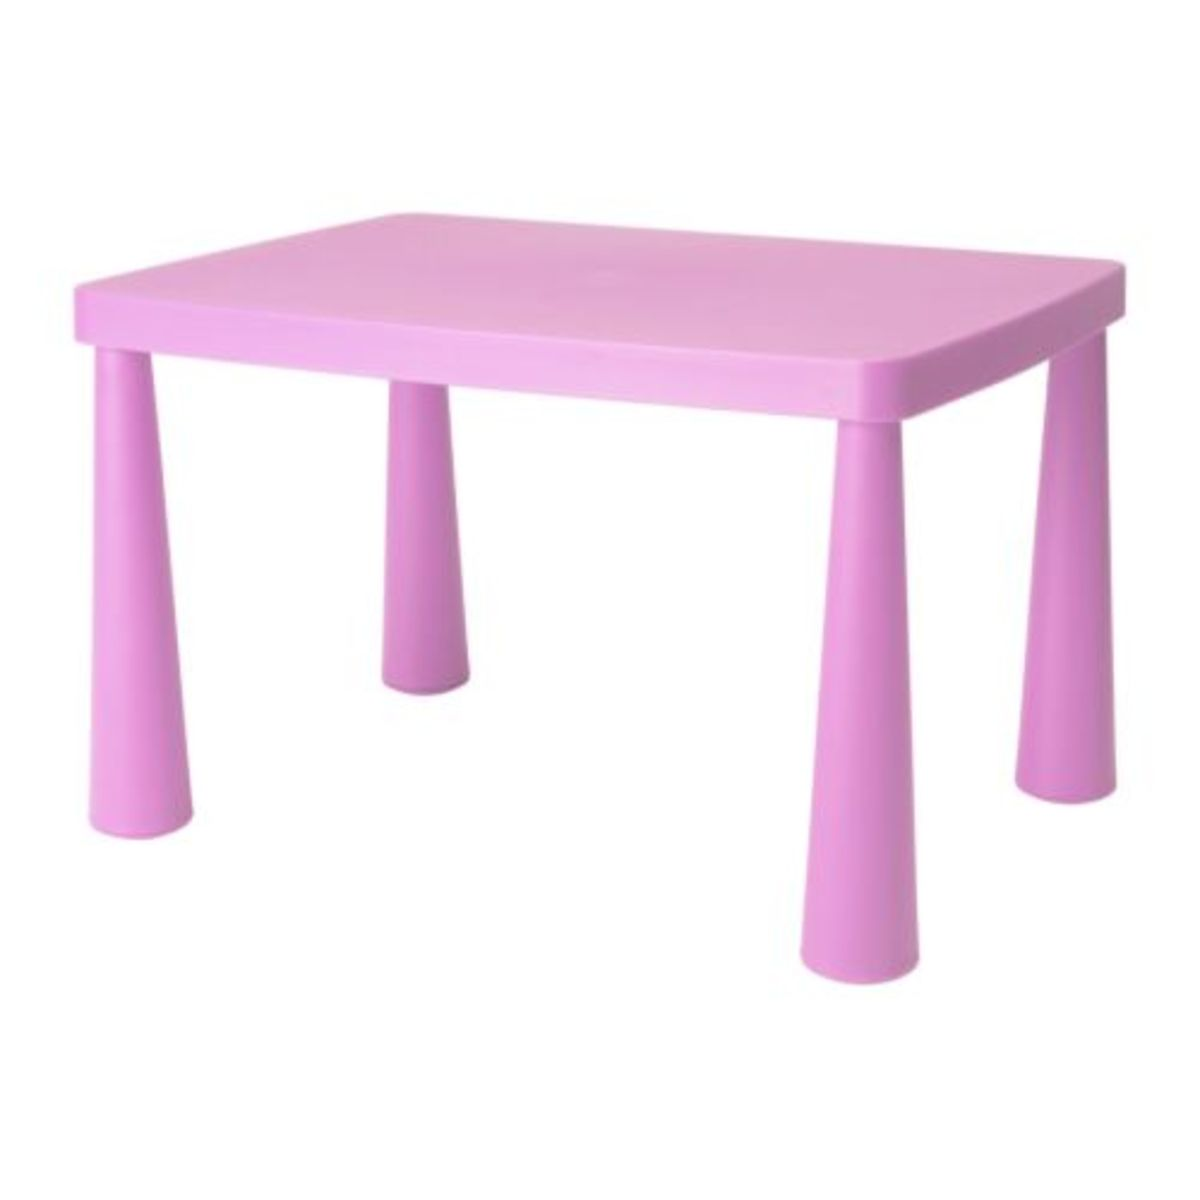 The Pink Table Story